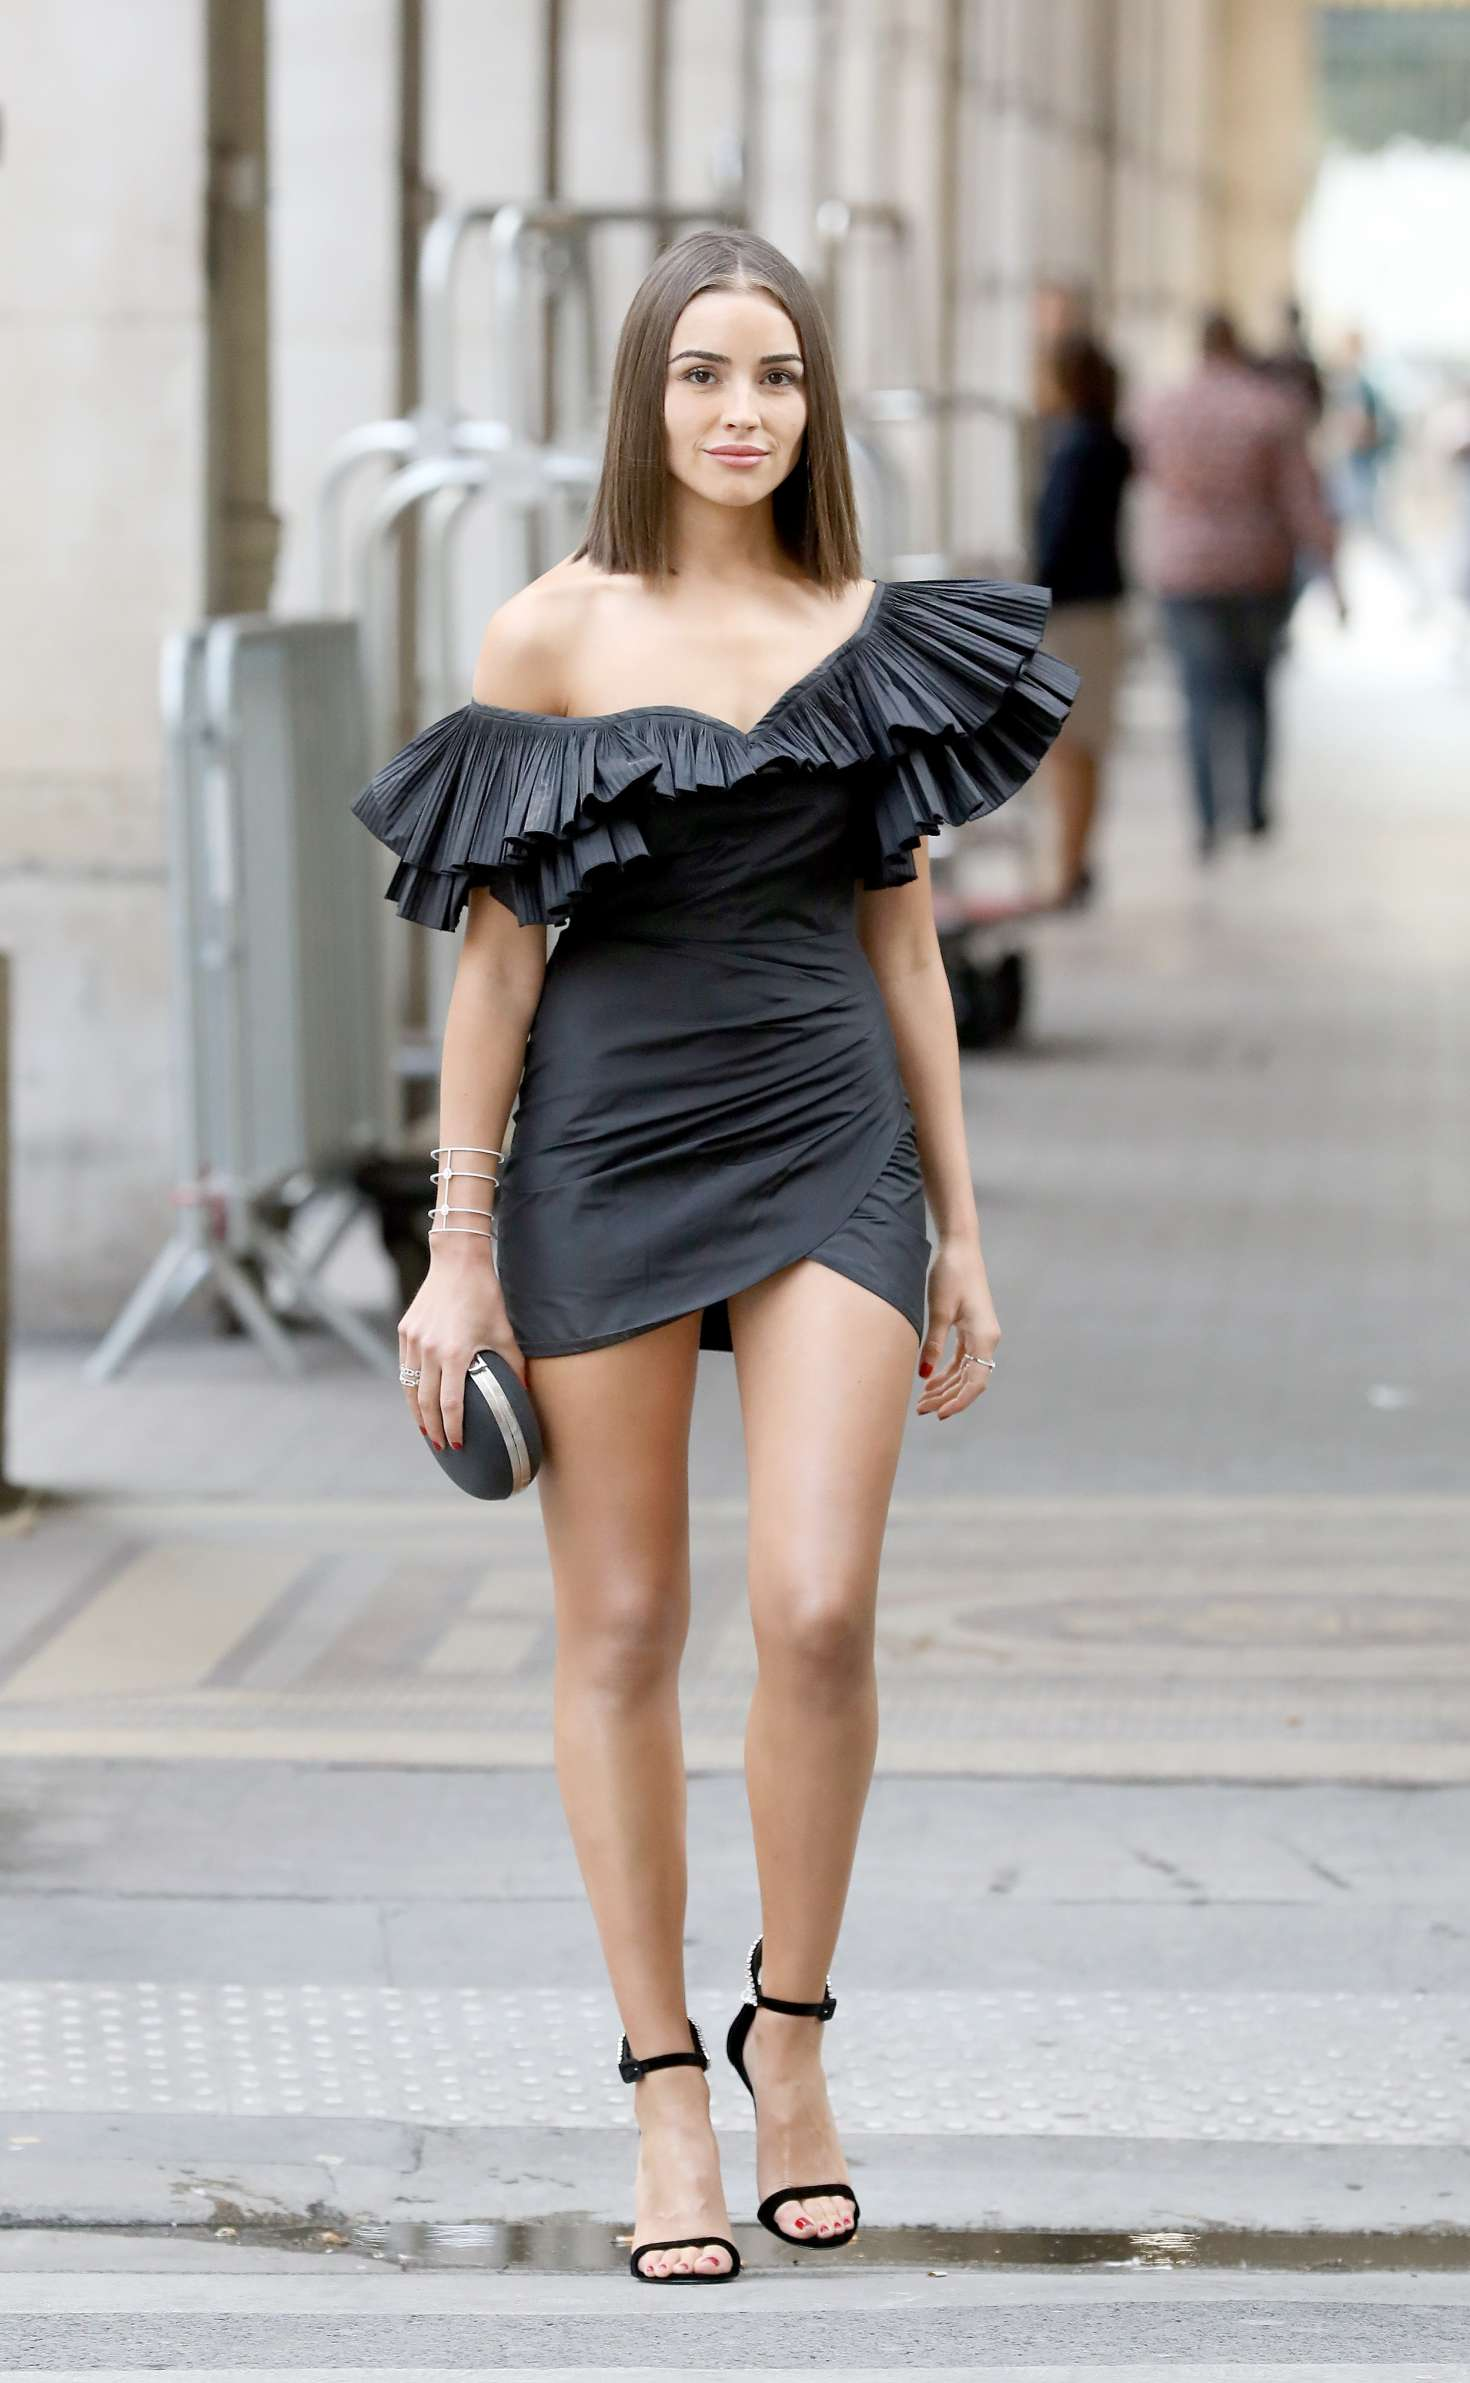 Olivia Culpo in Black Mini Dress - Out in Paris